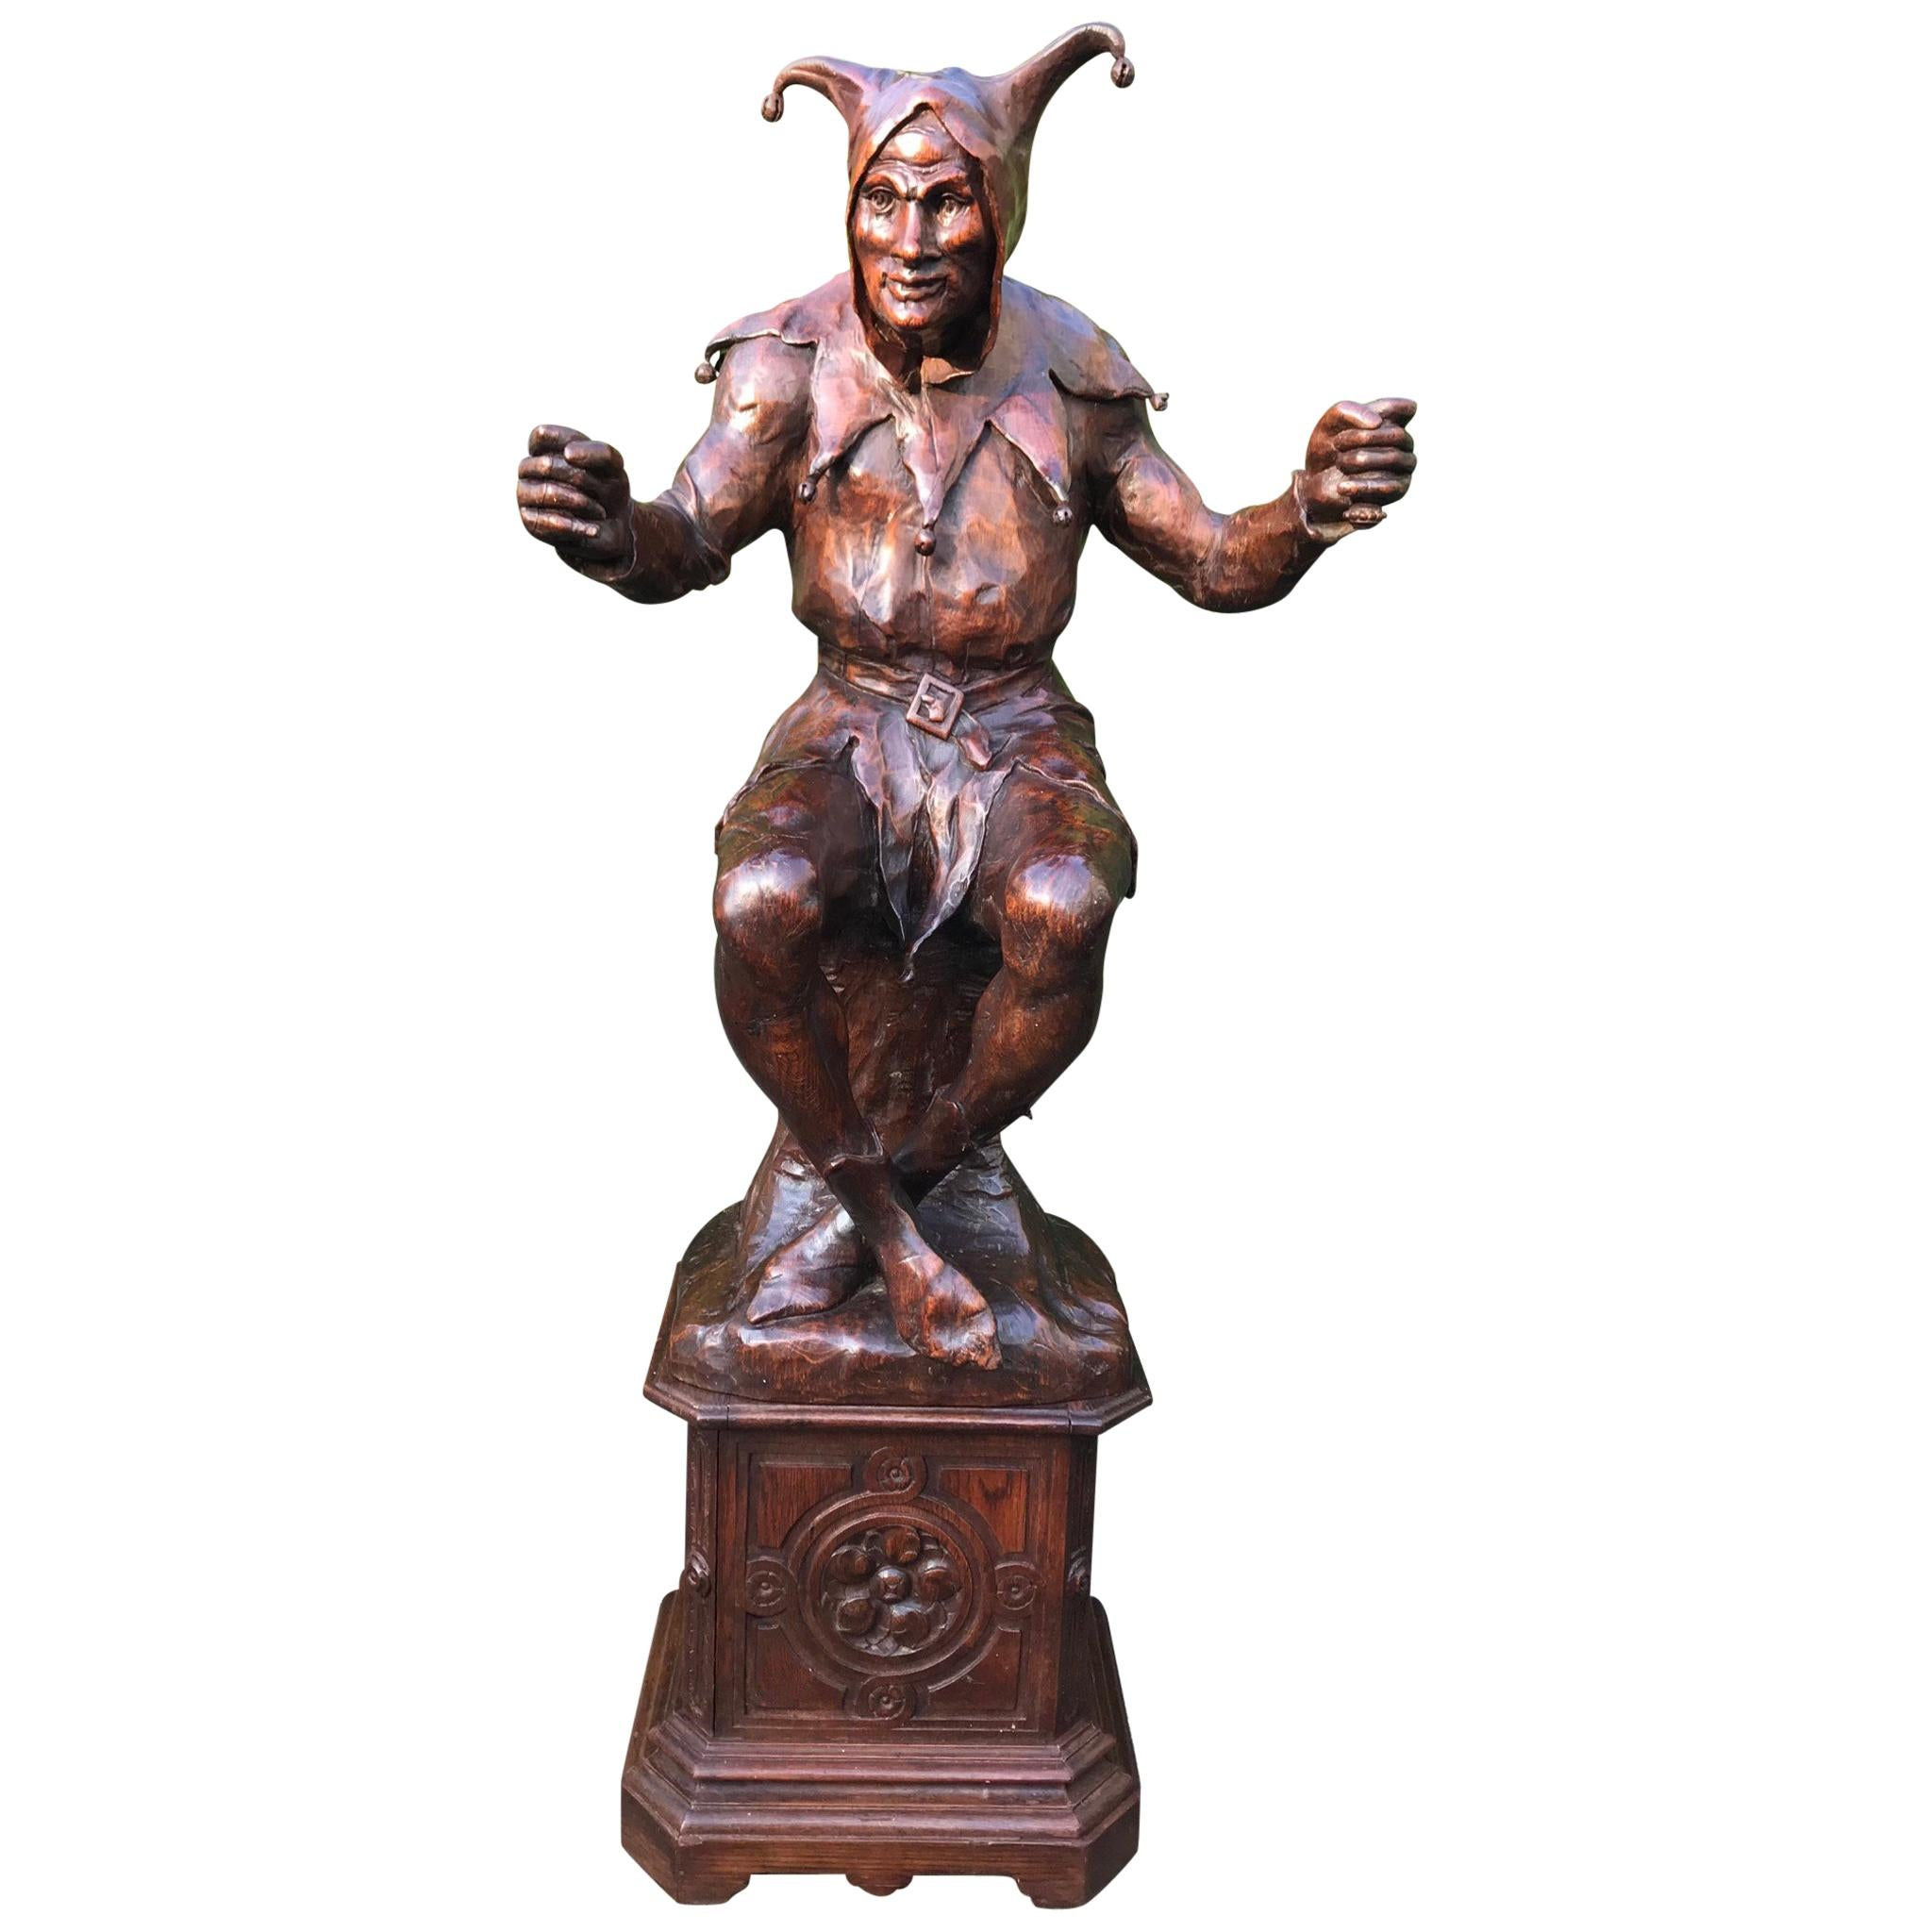 Stunning, Large and Hand Carved Renaissance Revival Court Jester Sculpture